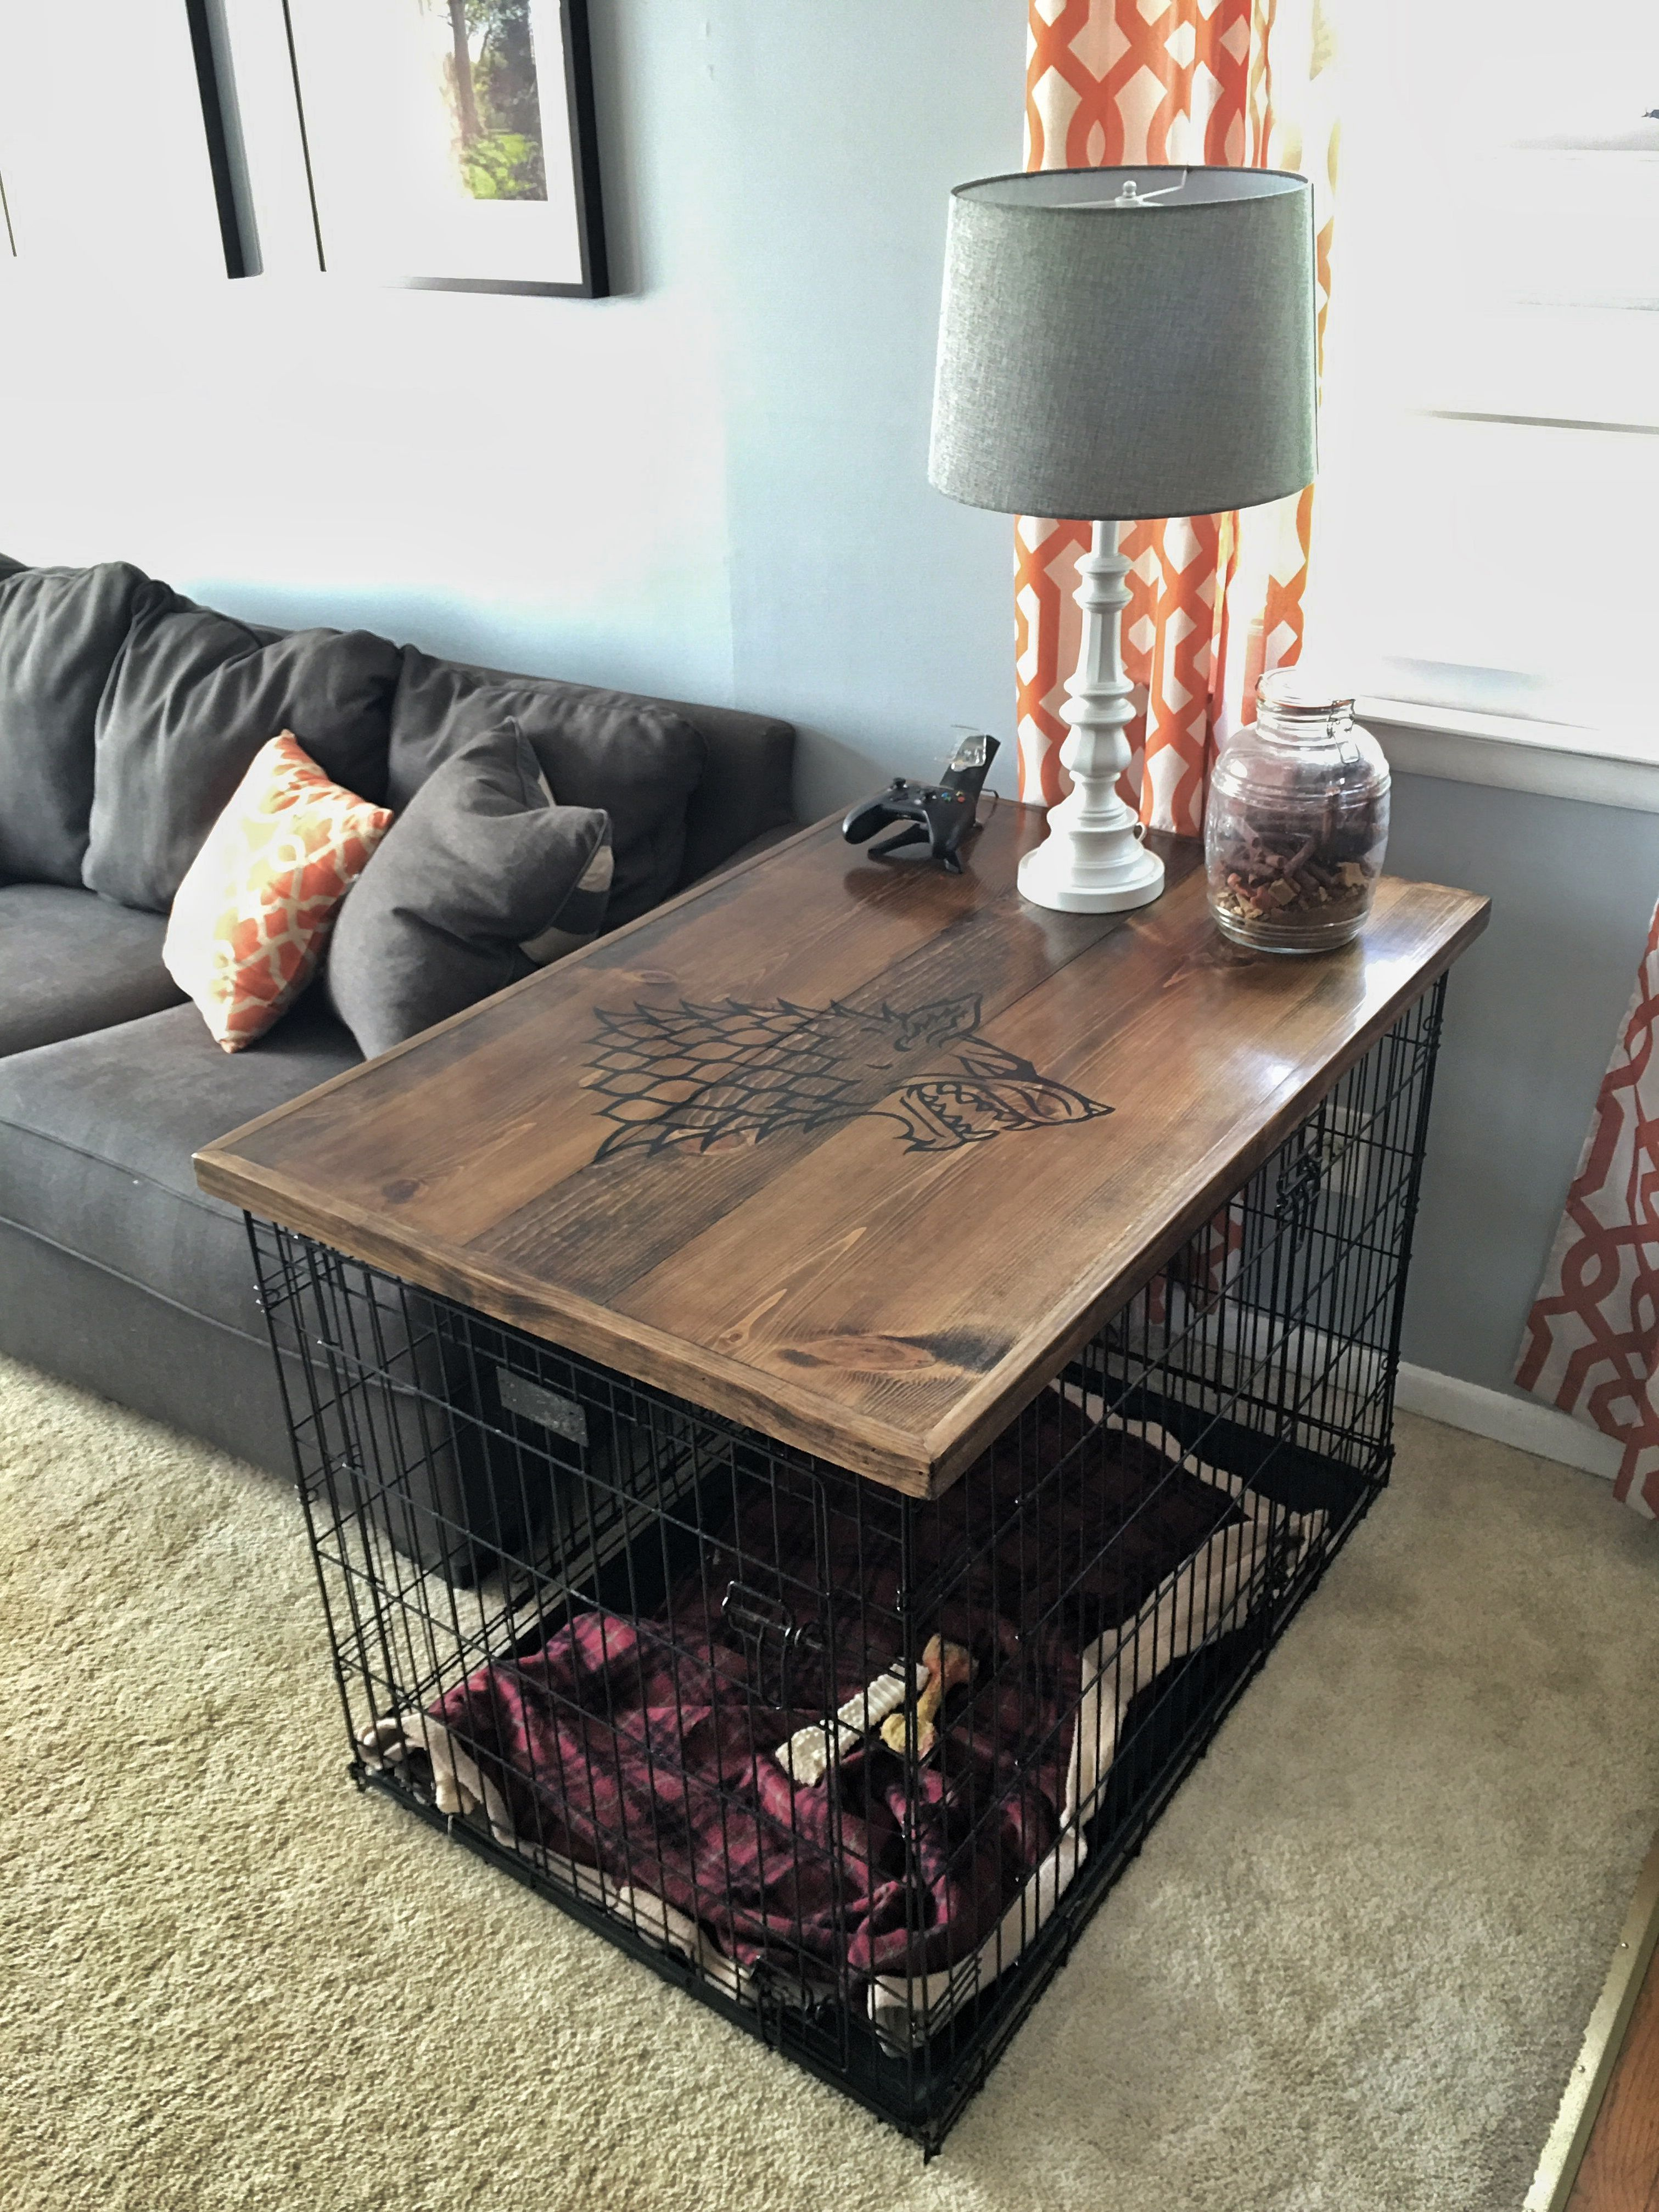 diy wood dog crate end table